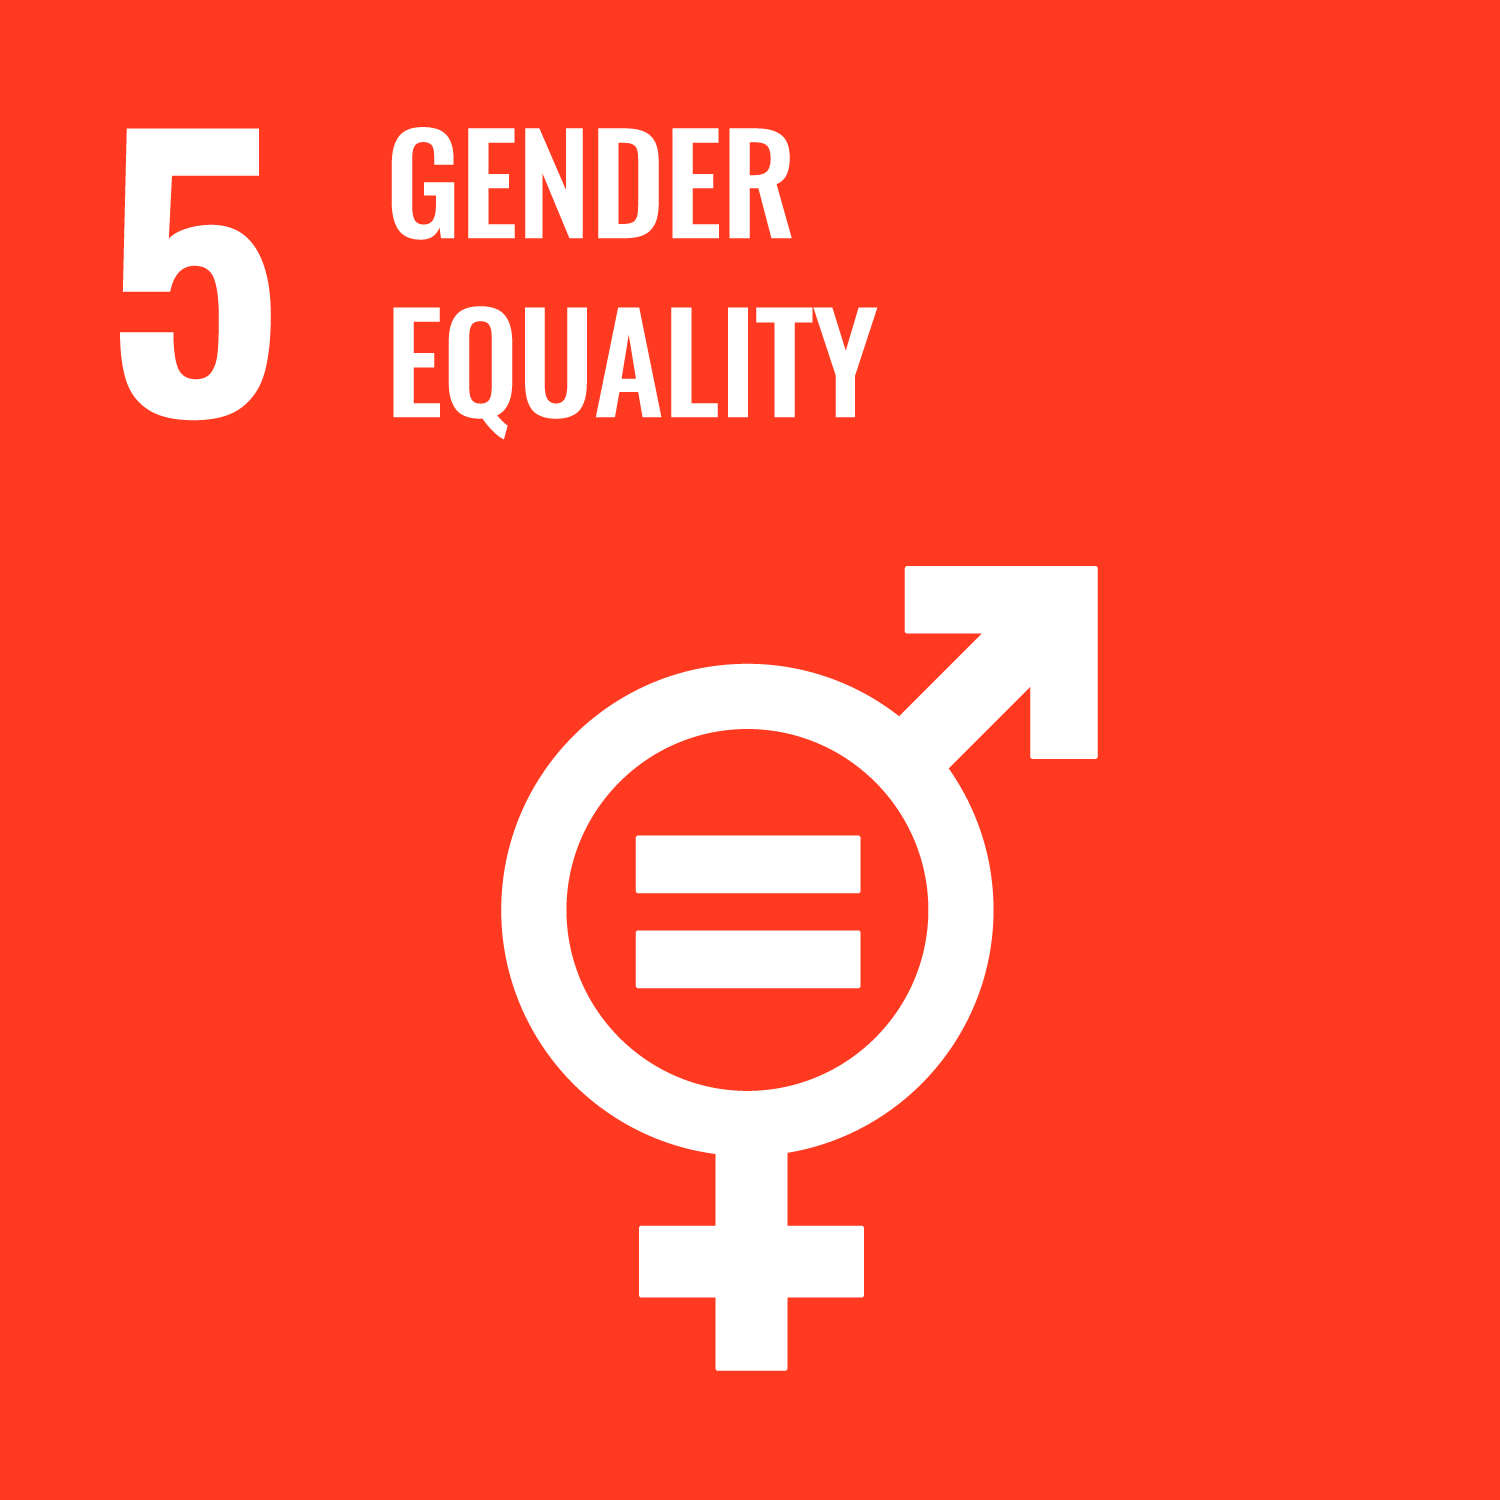 UN Sustainable Development Goal 5: Gender Equality